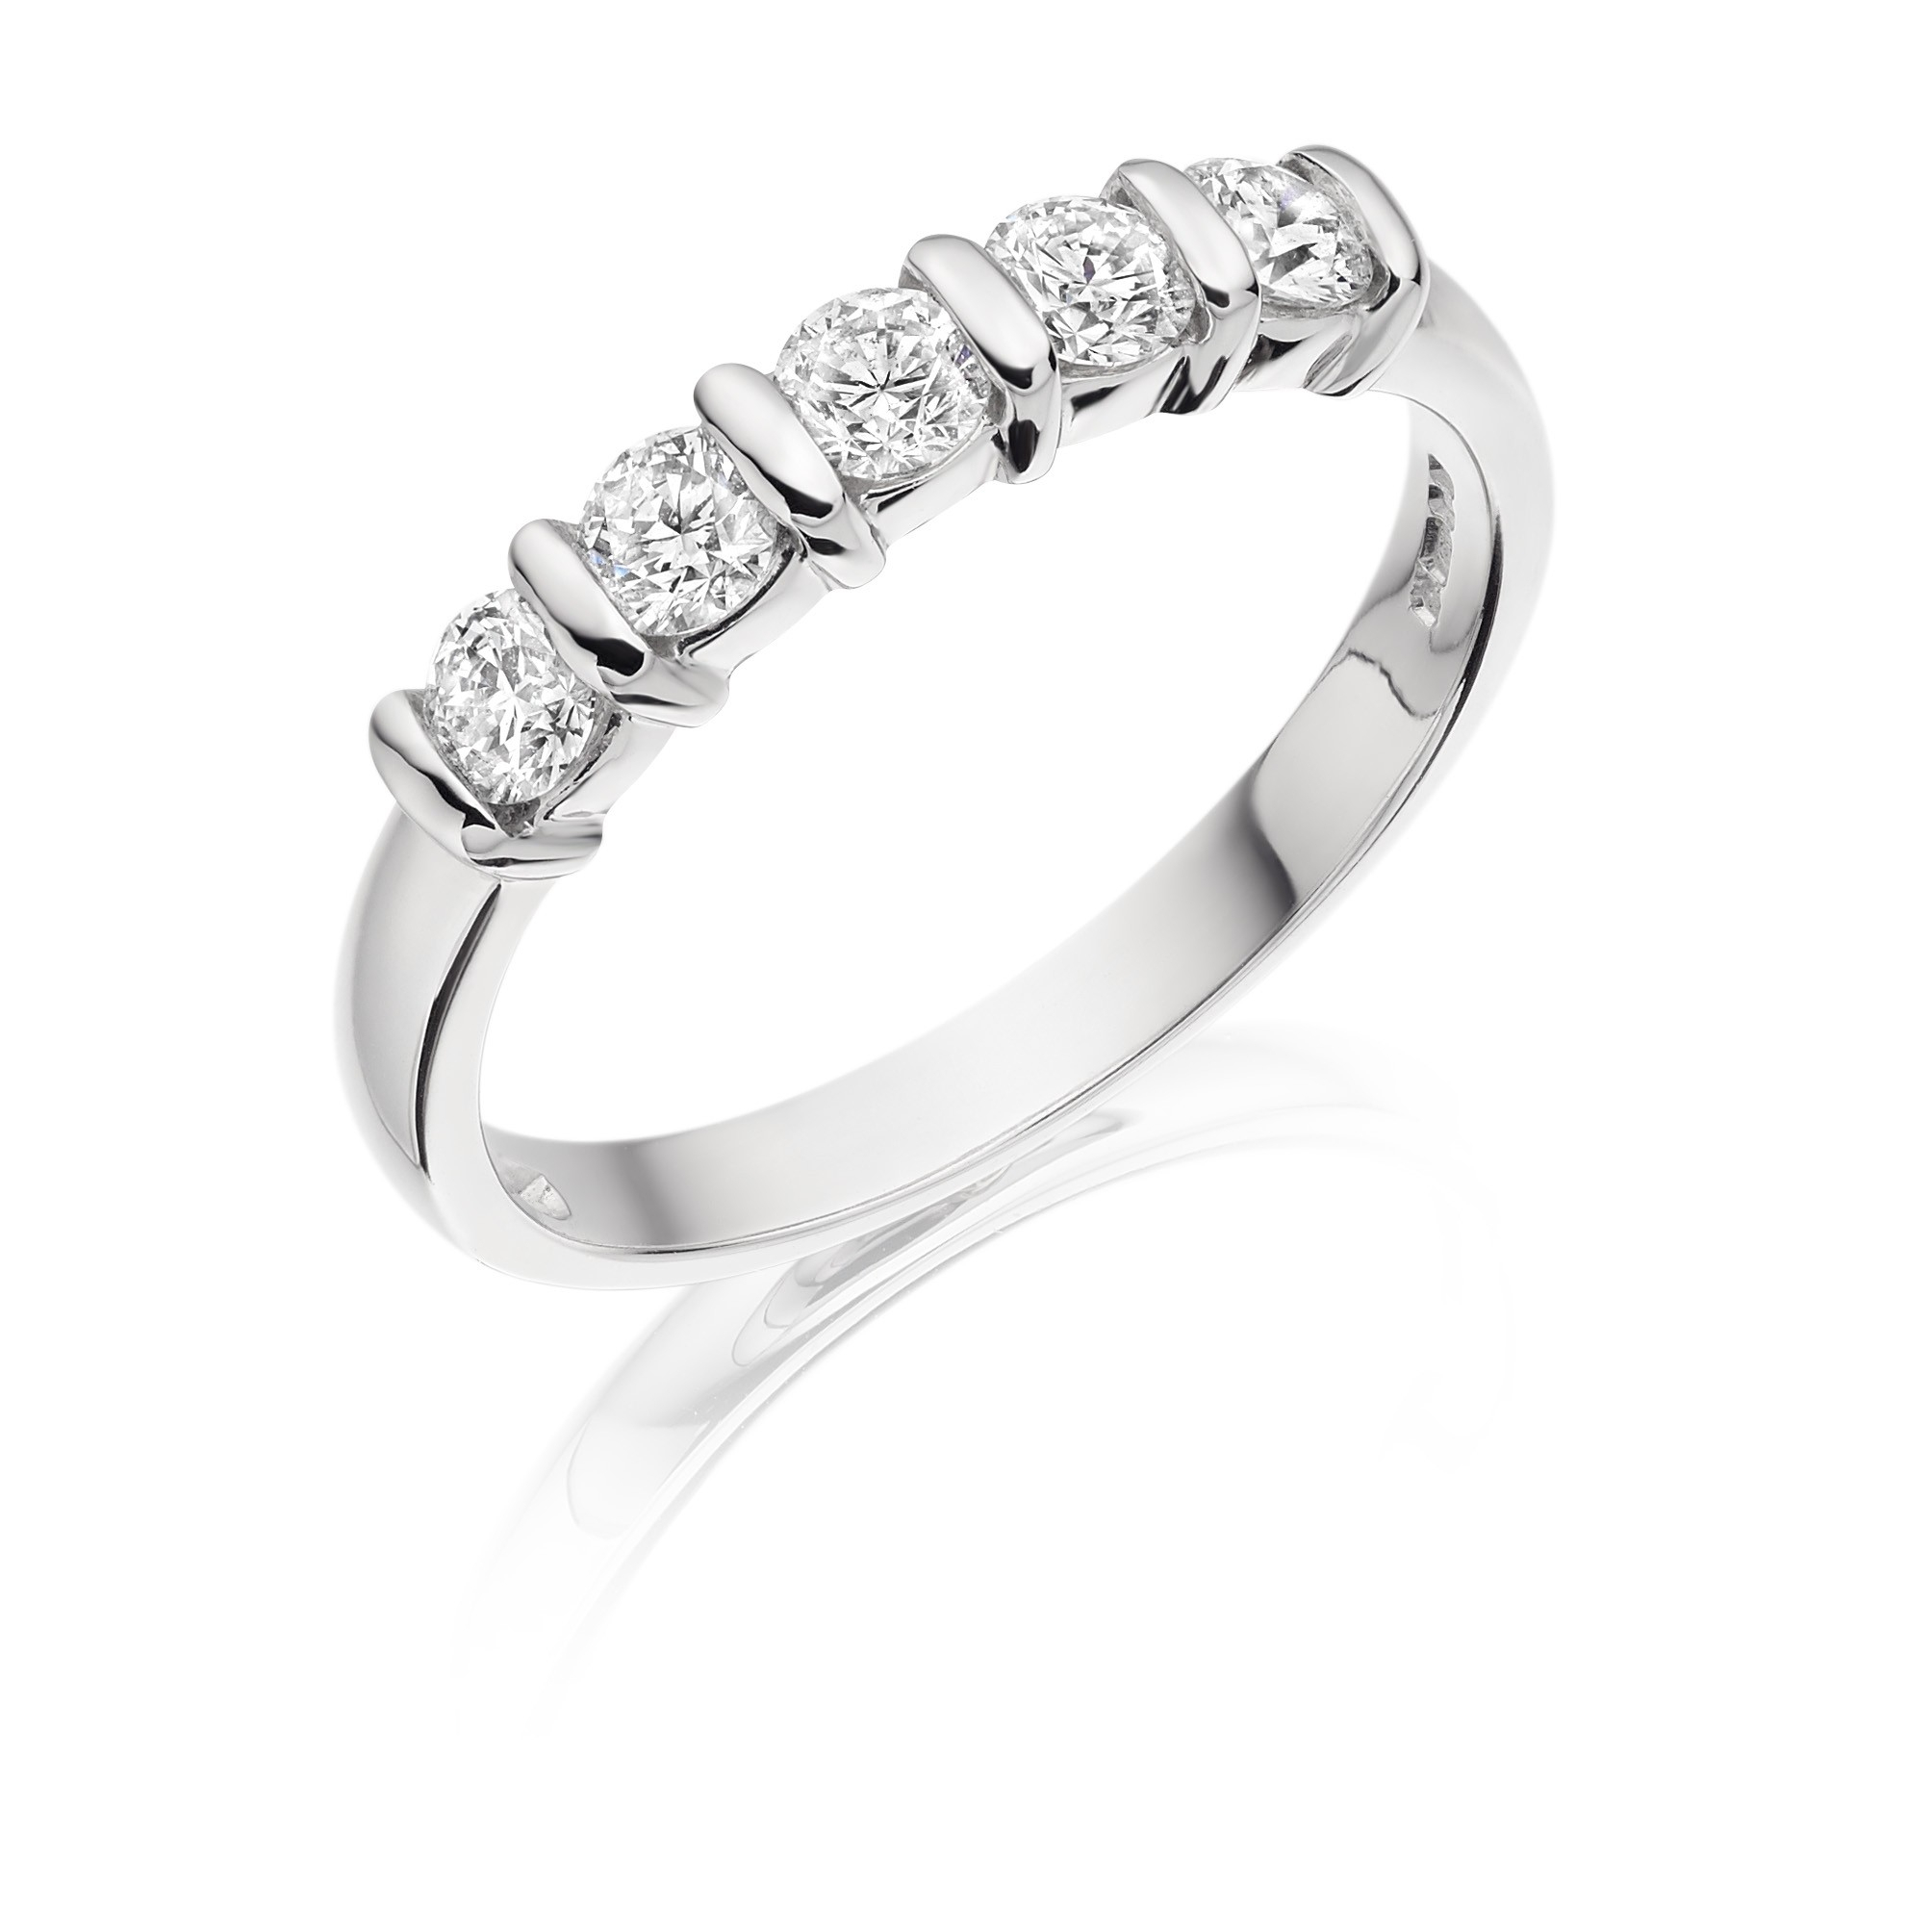 18Ct White Gold Five Stone Bar Set Diamond Ring 5Bs70K+ With Regard To Most Current Diamond Five Stone Bar Set Anniversary Bands In White Gold (View 6 of 25)